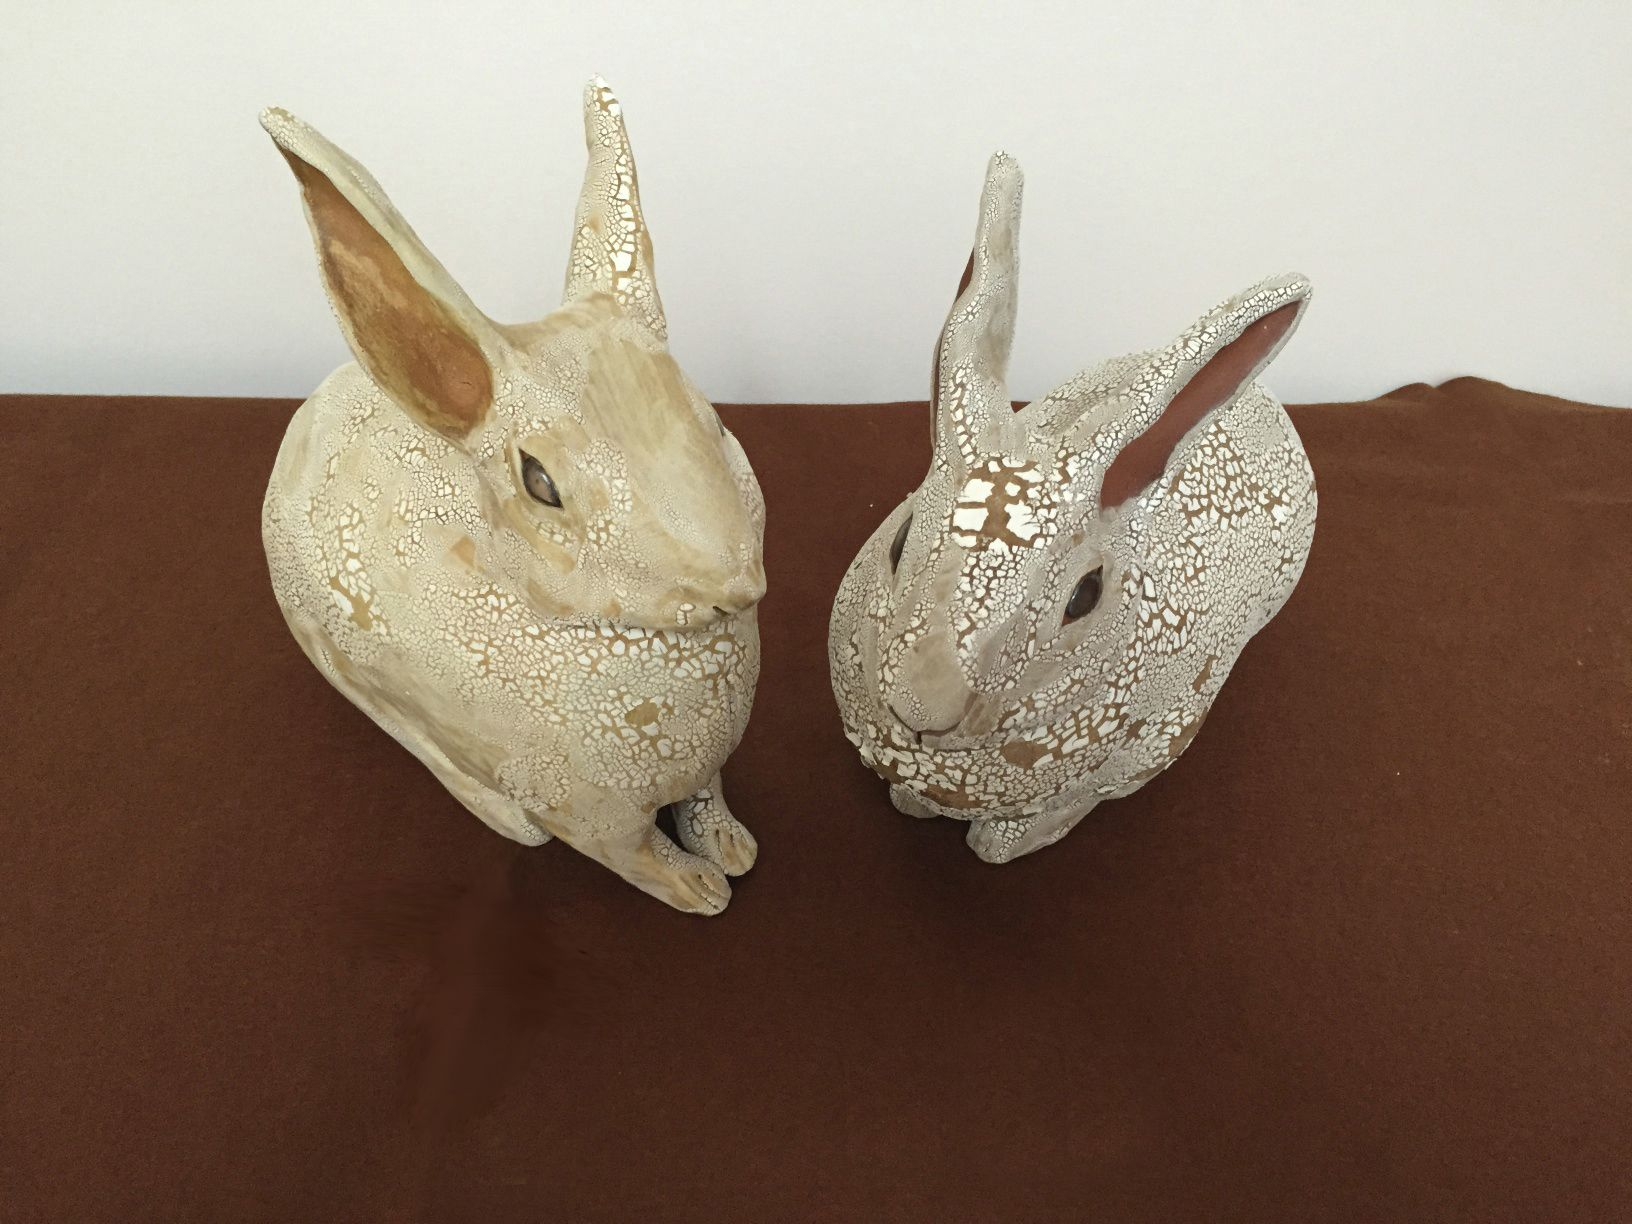 These Rabbits Are Inspired By My Friend S Amazing Rabbits